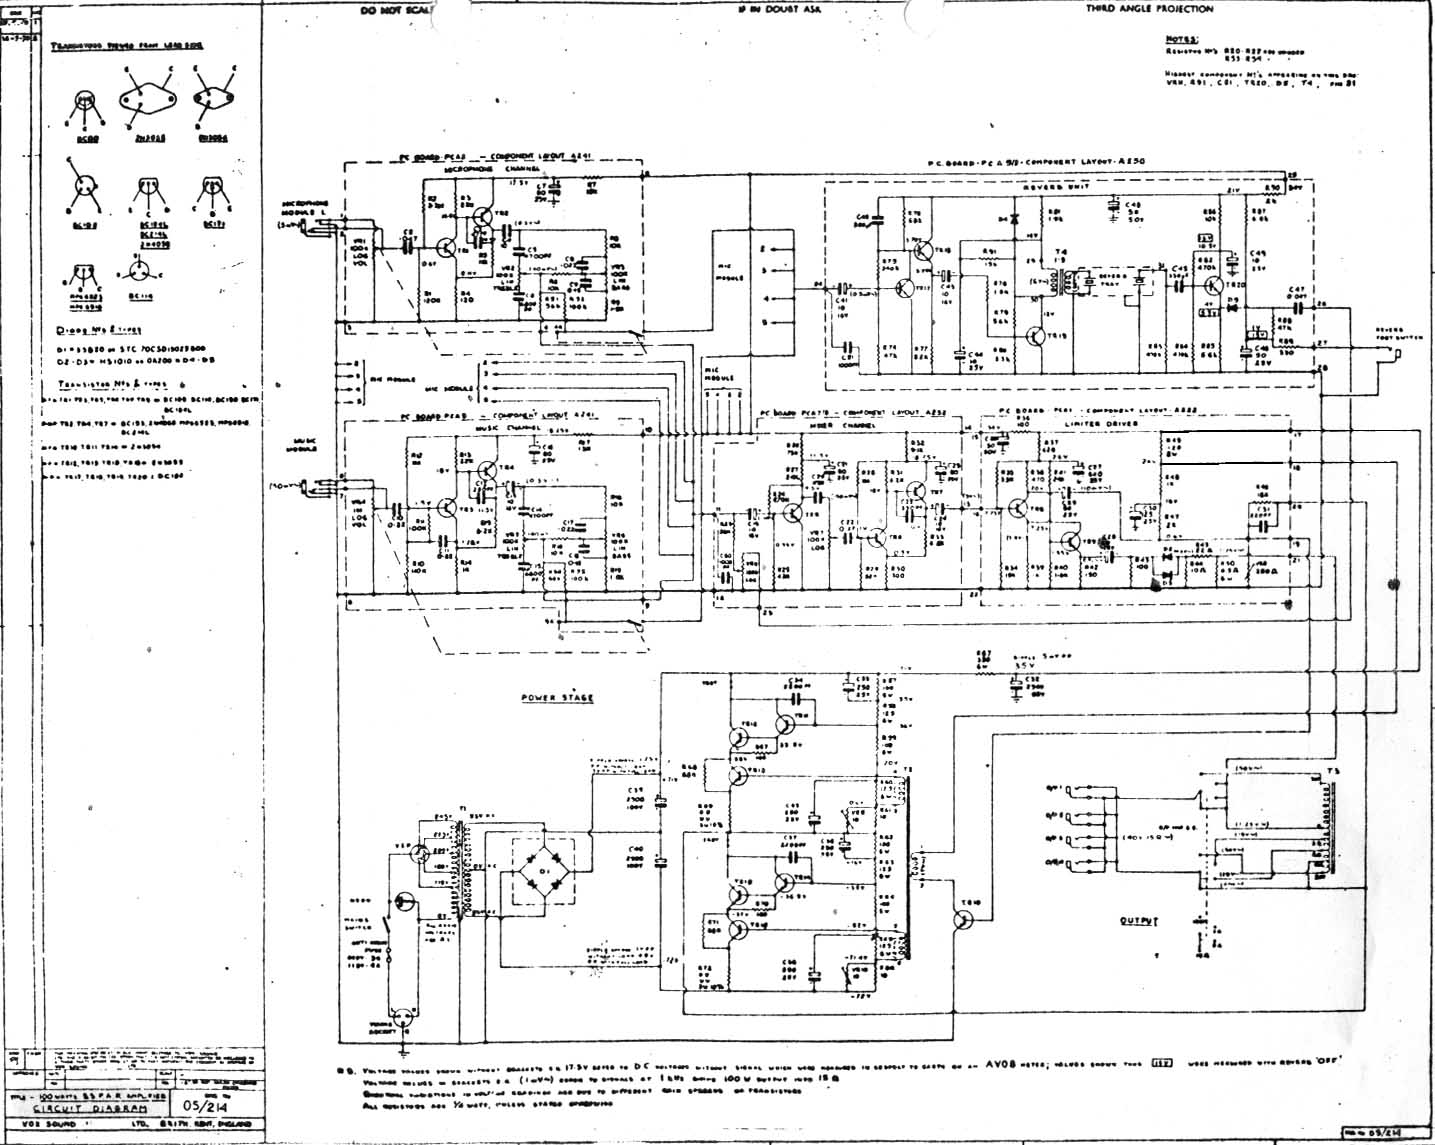 Wiring Diagram Vox Phantom Page 2 And Schematics Dji Vine Circuit Diagrams Rh Korguk Com Prince Guitar Guitars Jimmy